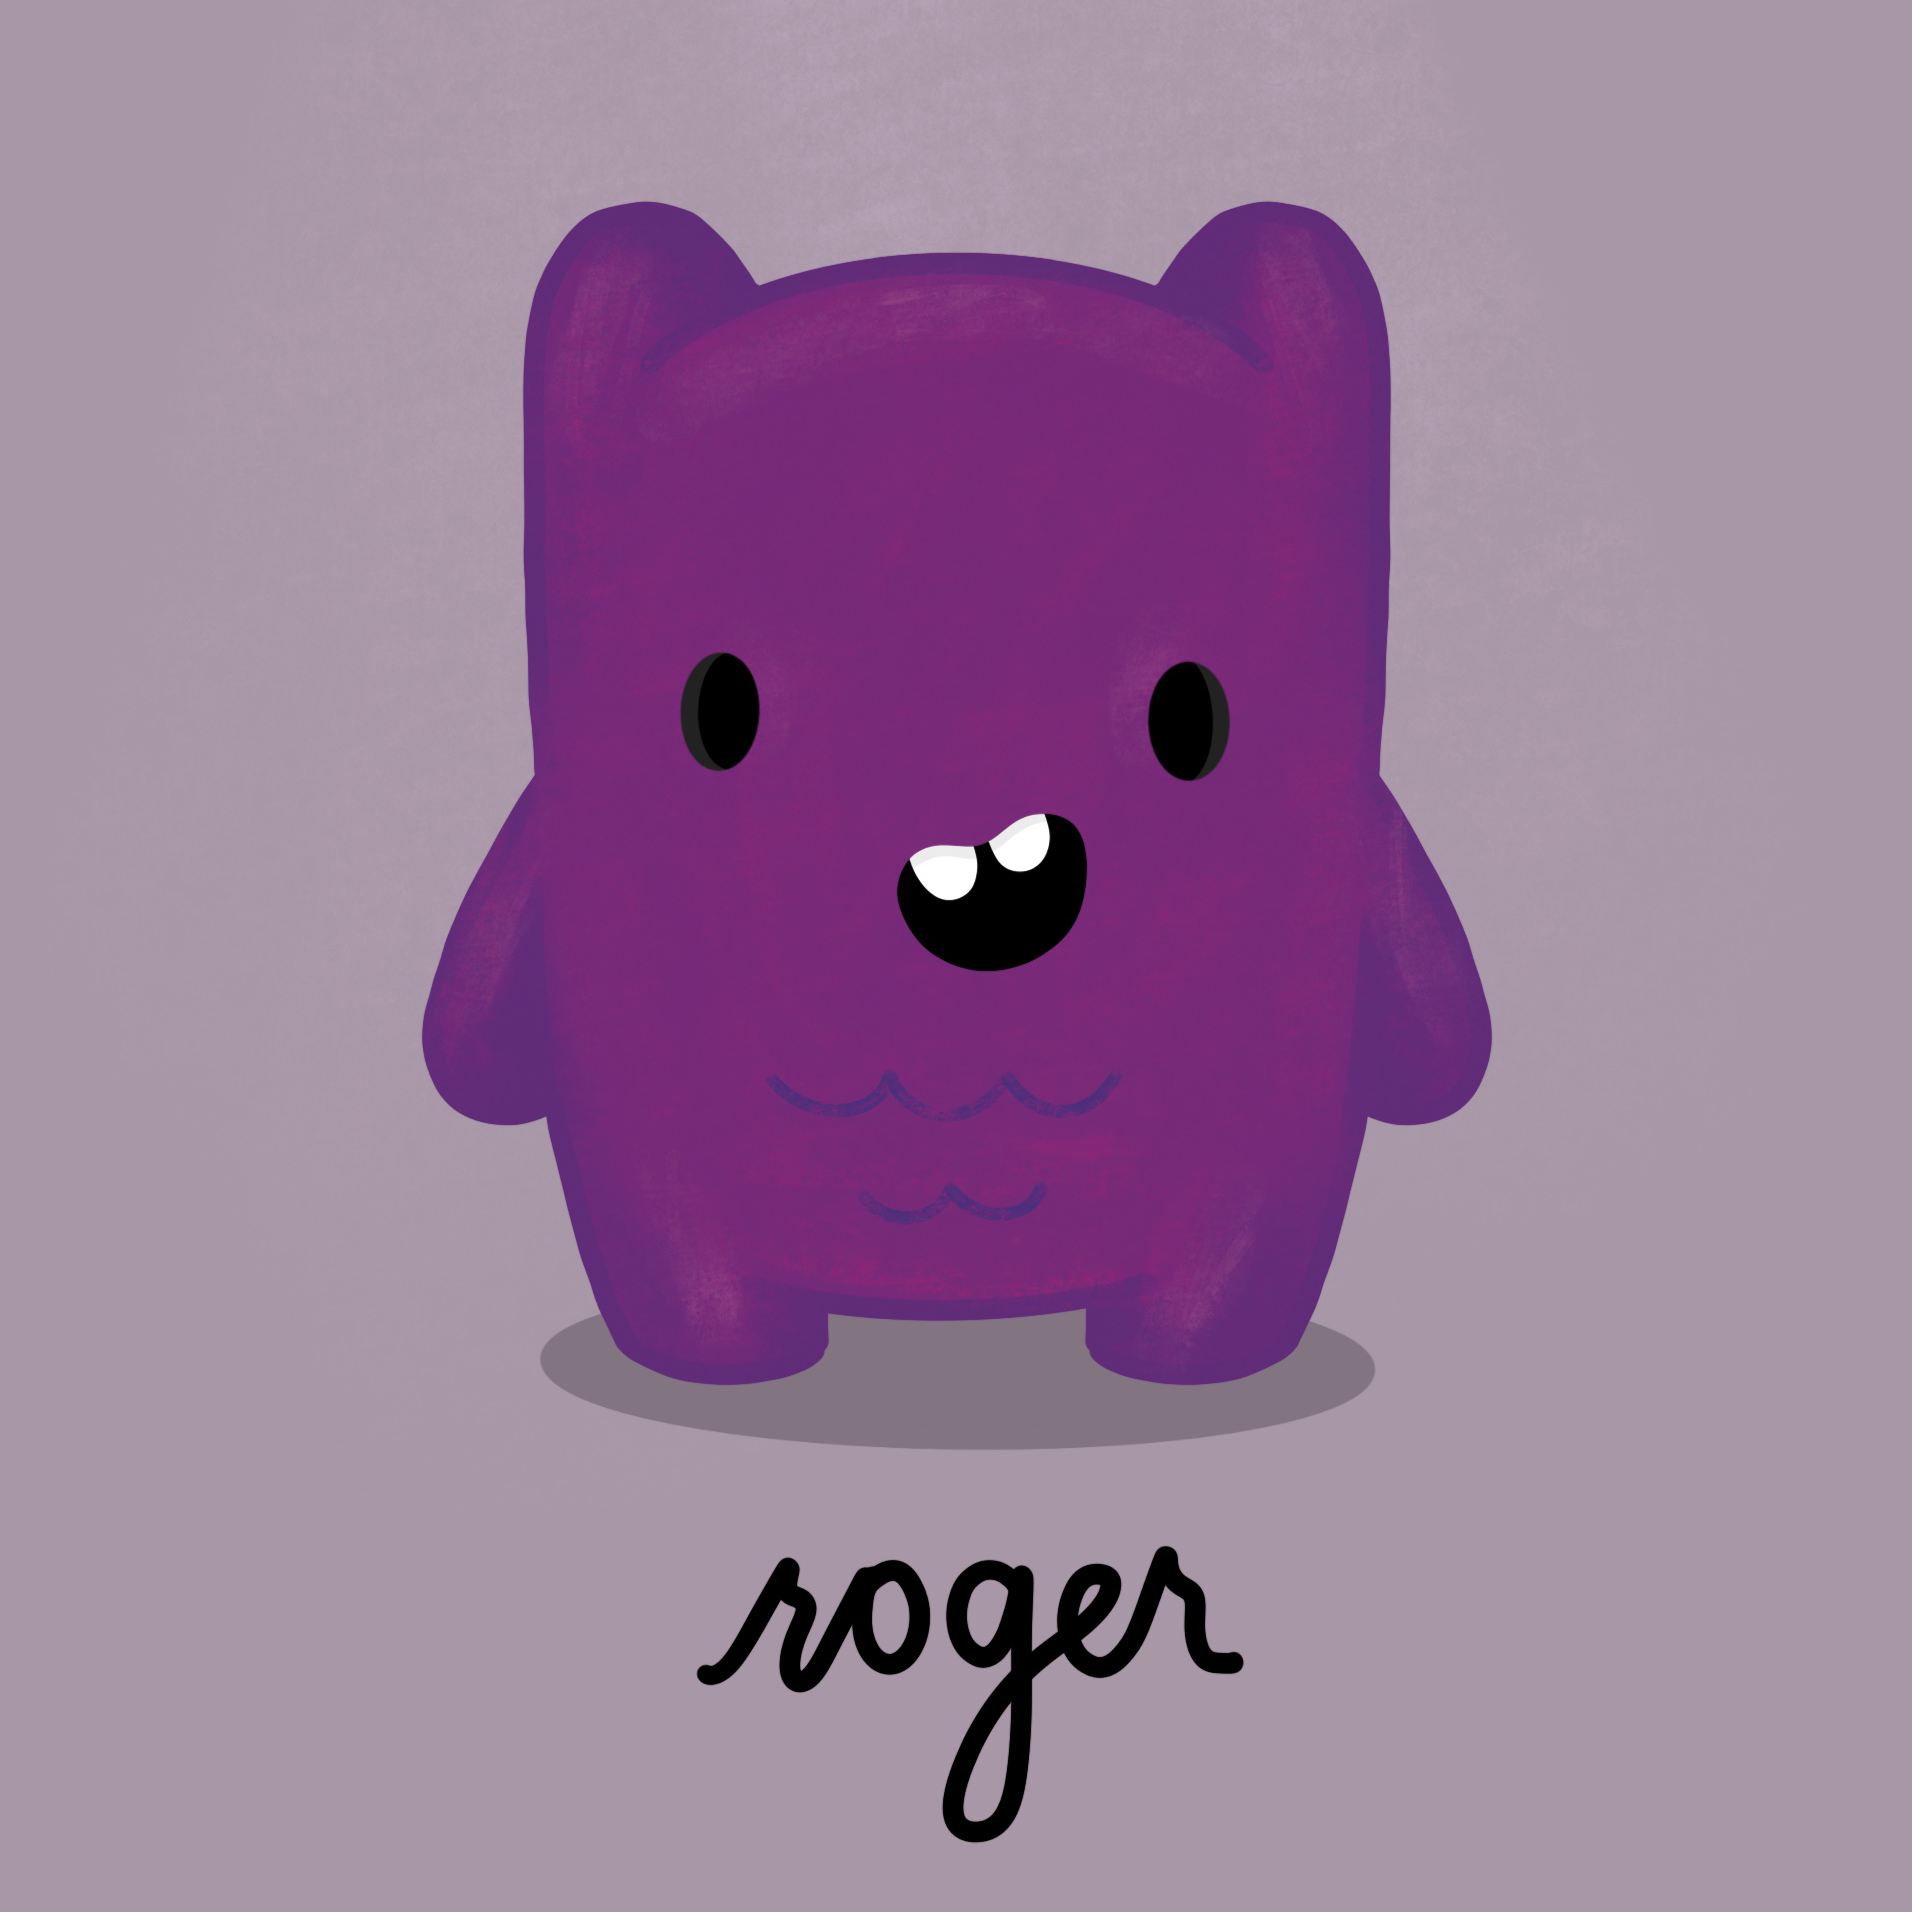 roger.png